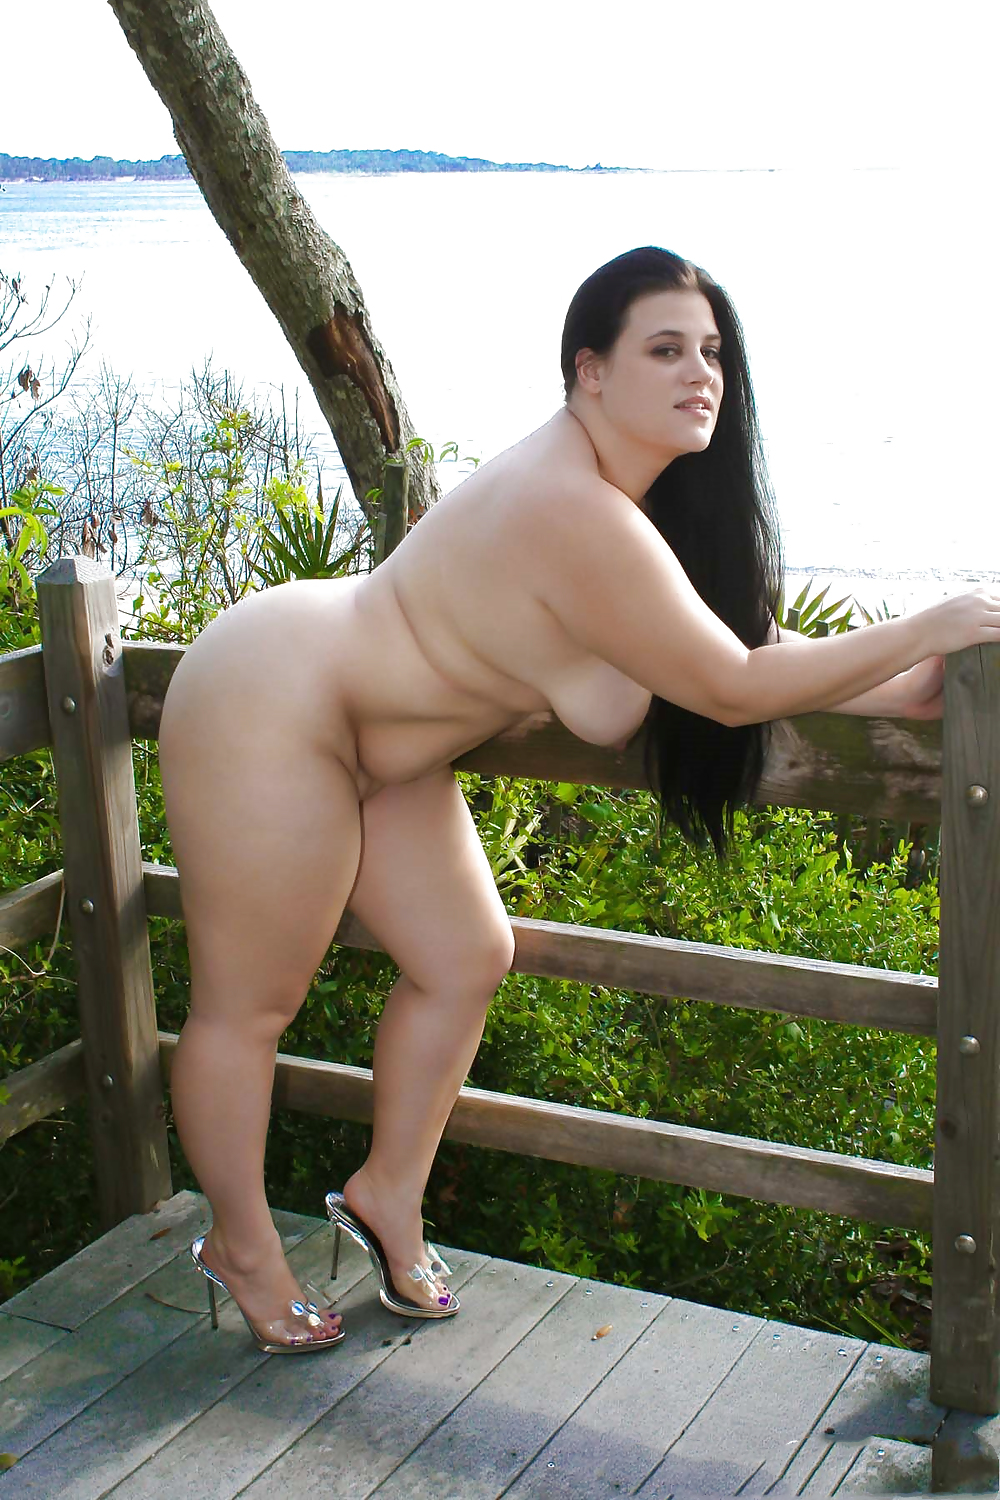 Naked chubby girls in heels — pic 14